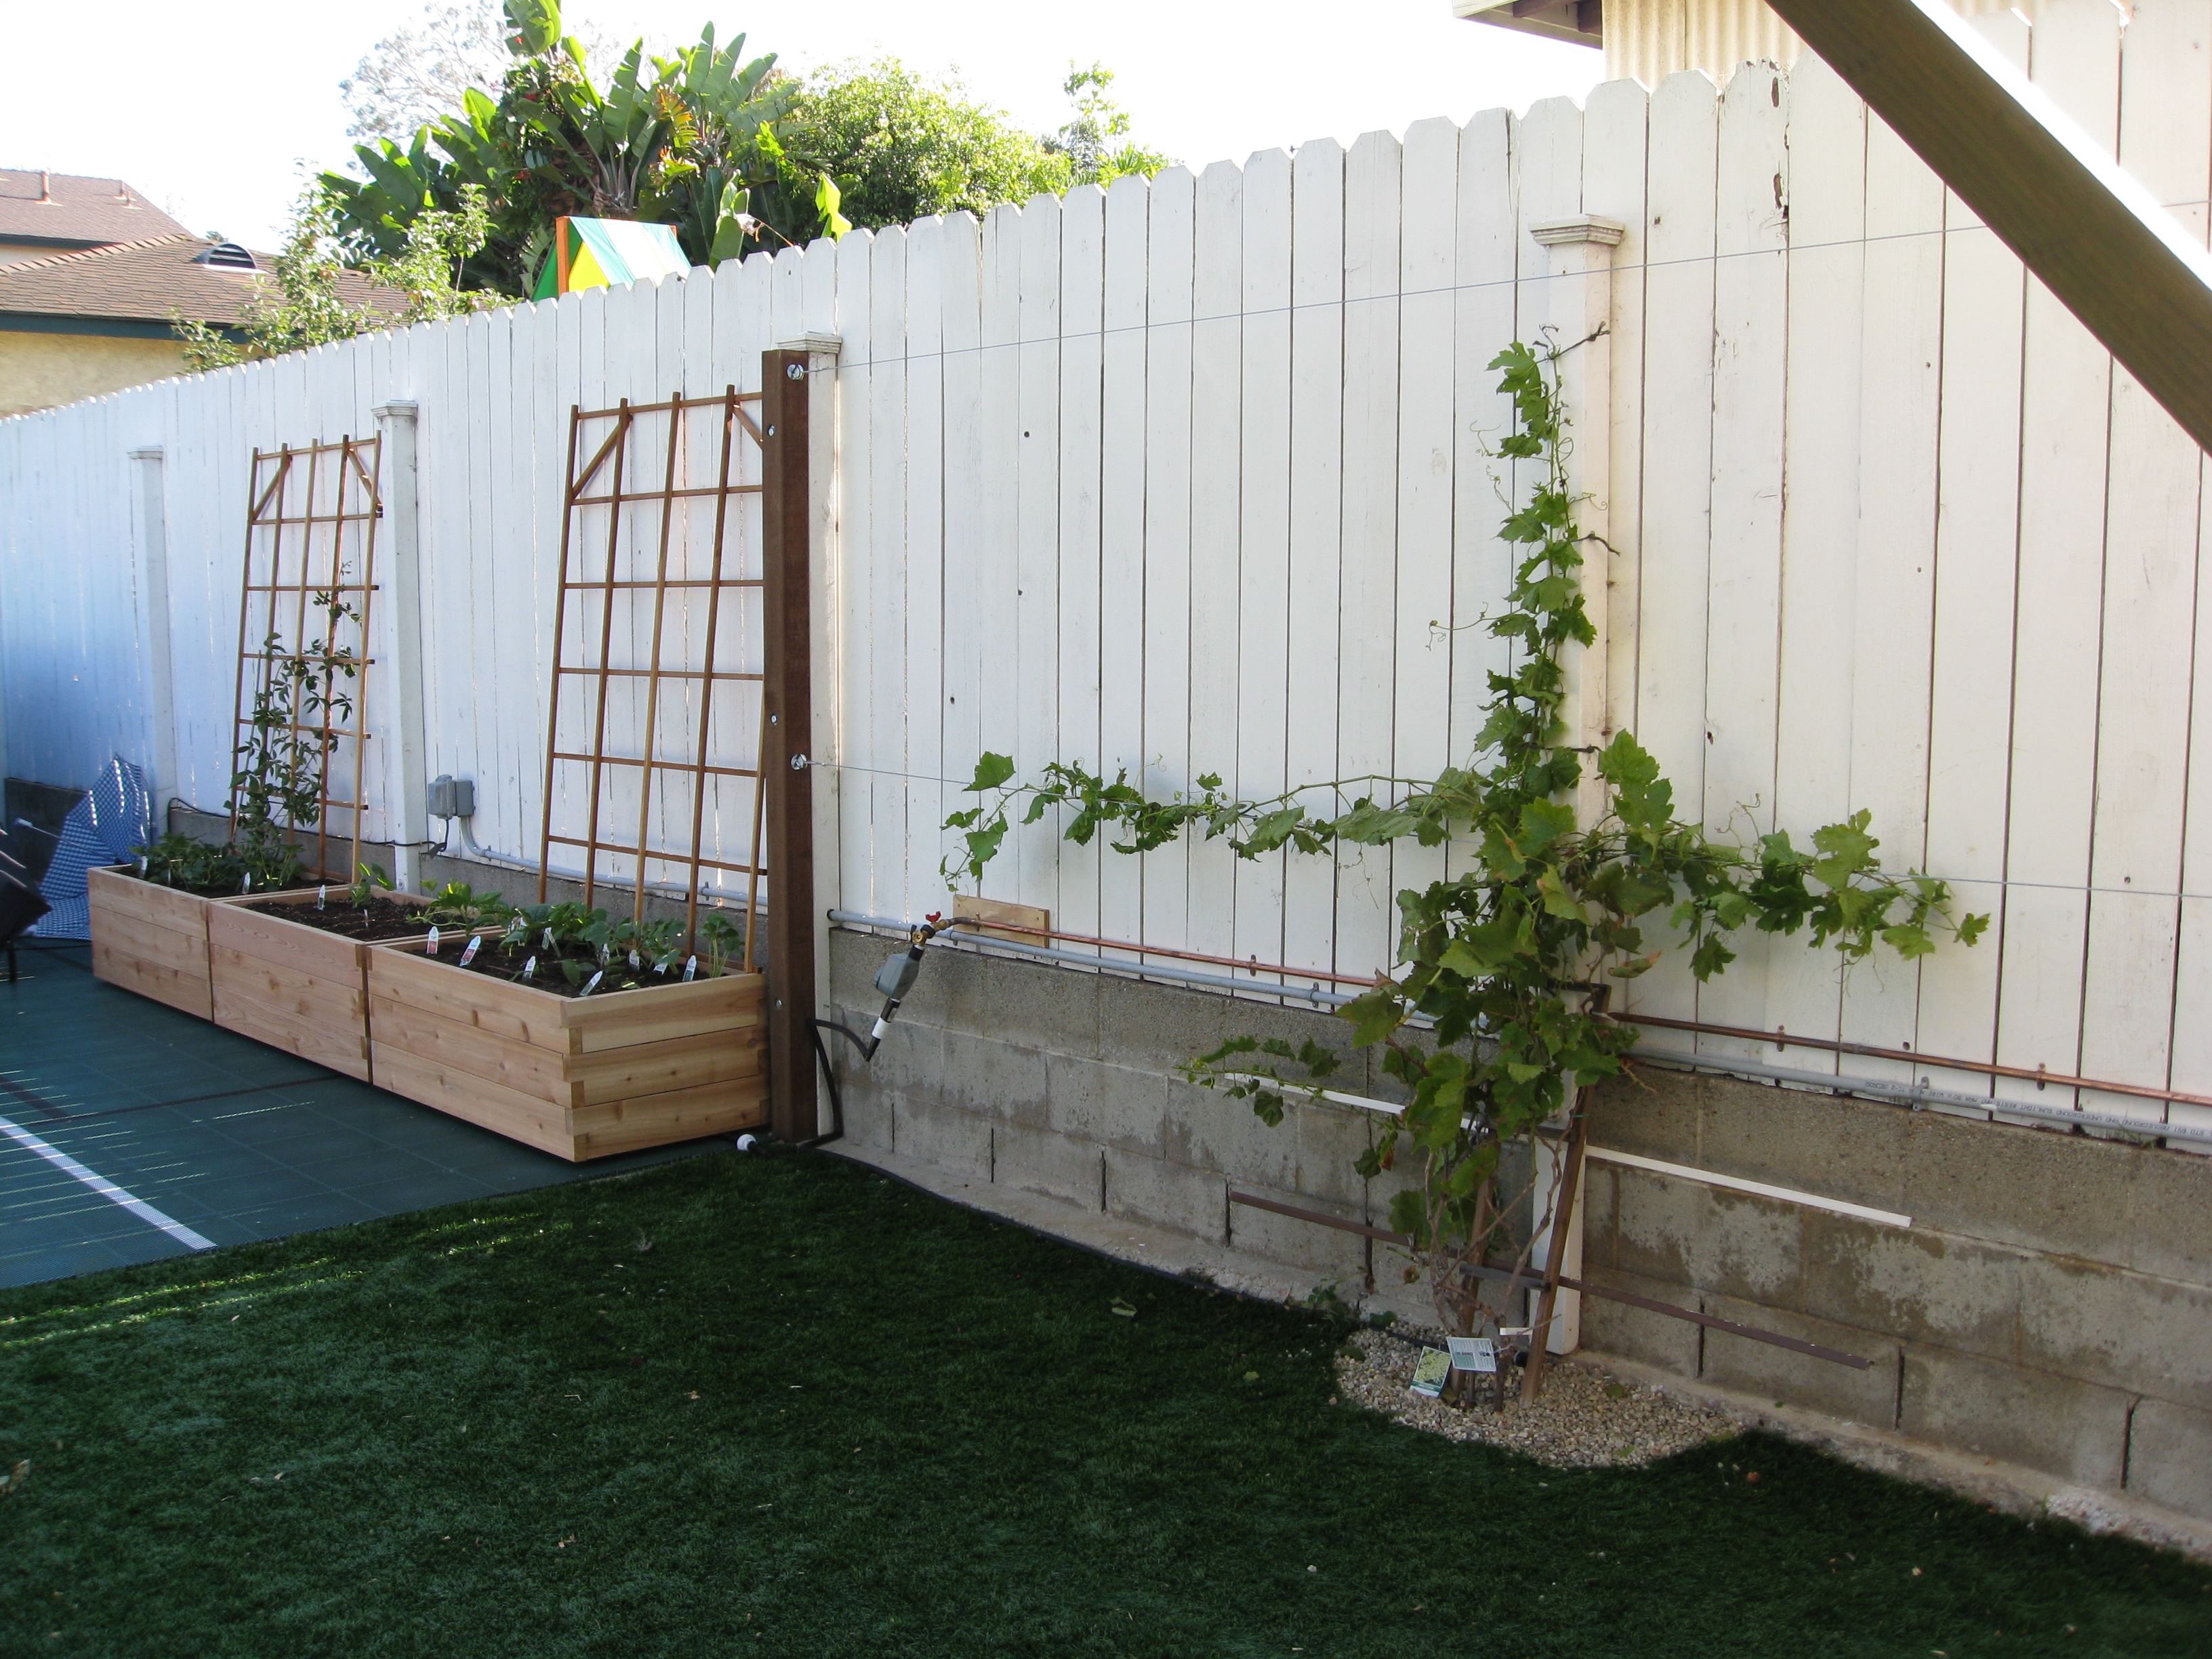 Grapevines against the fence will grow to fill in their new trellis. Red grapes to the right, green grapes to the left.